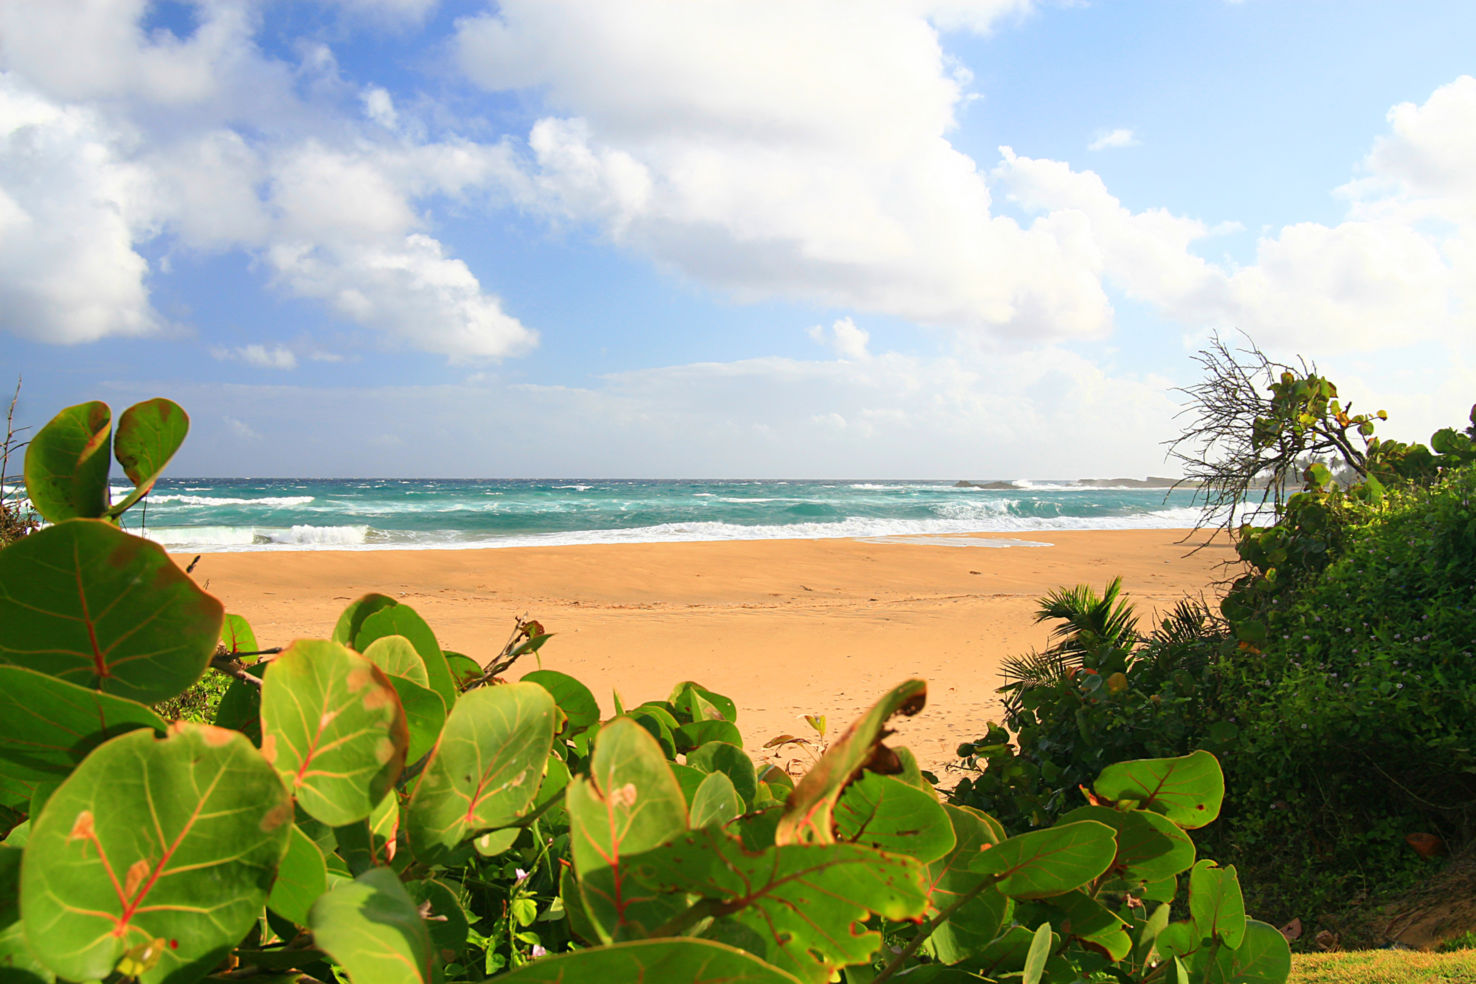 A beautiful scene of a secluded tropical beach in Isabela At the island of Puerto Rico